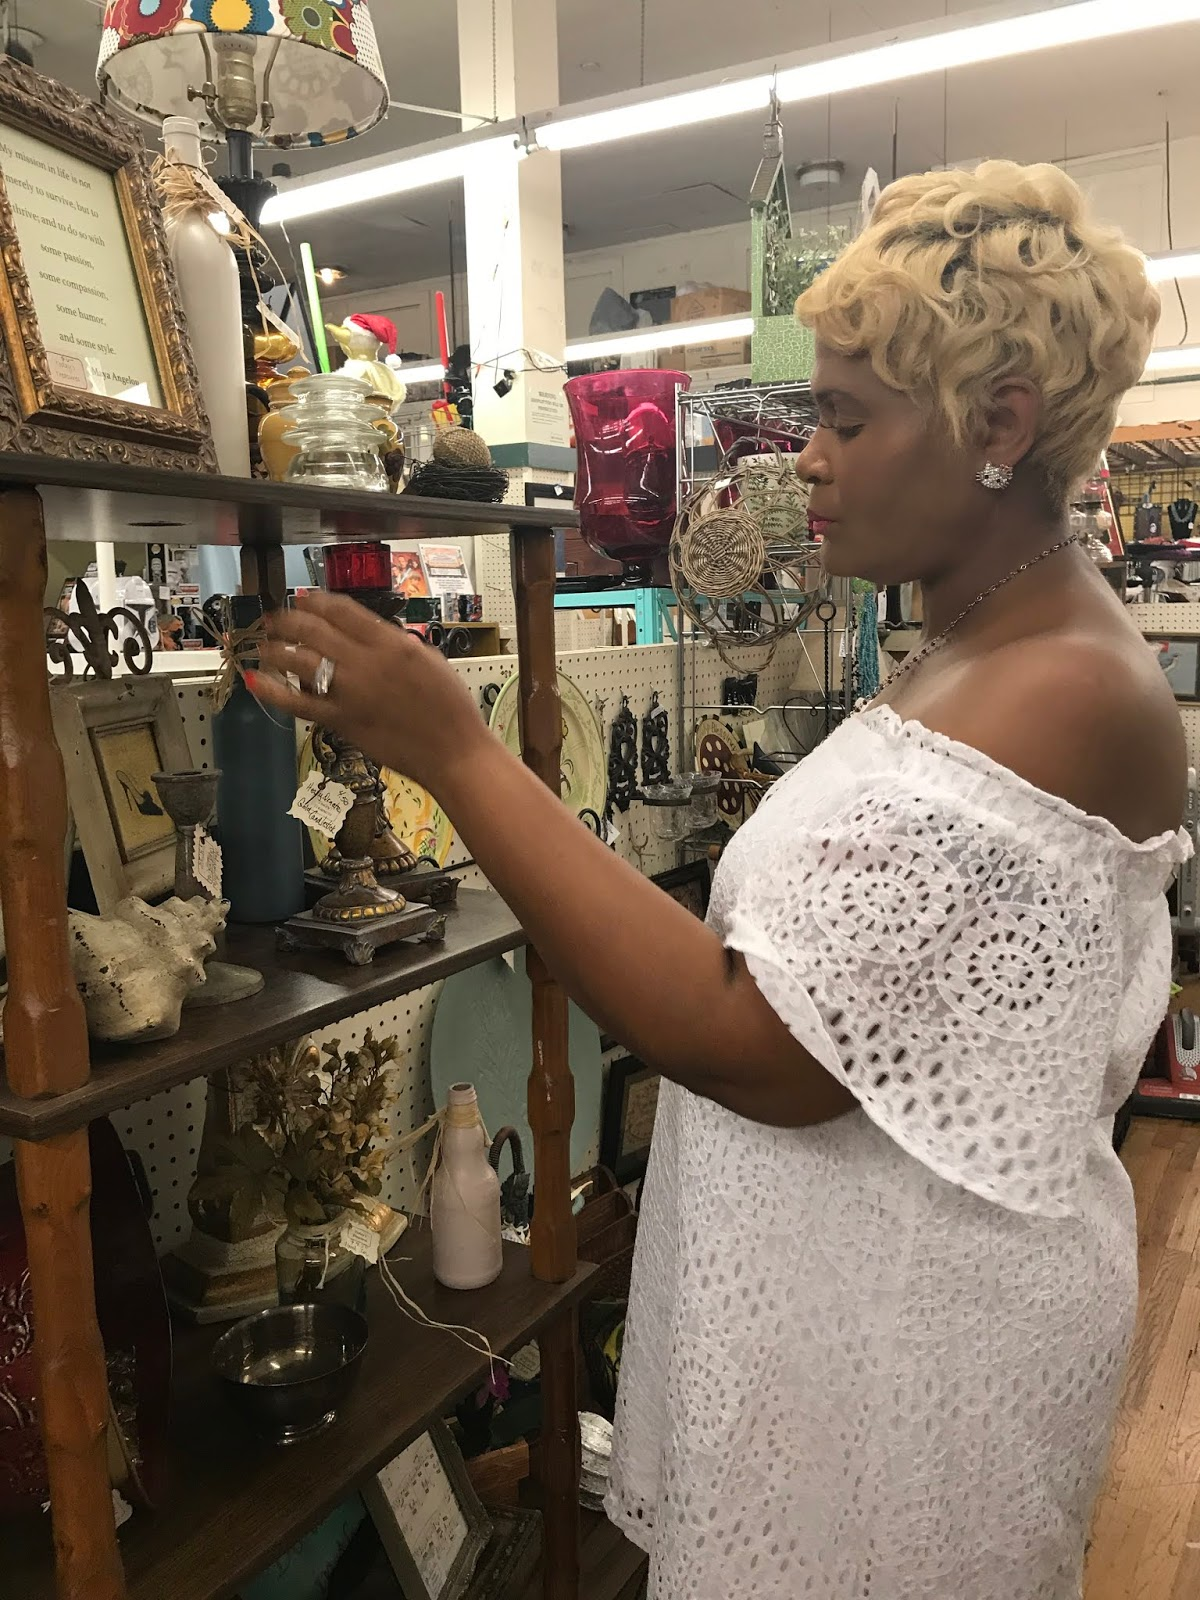 Image: Tangie Bell shopping in thrift store. If I only knew I was going to need more guidance and understanding as I age, I would've paid more attention to every year I let slip by after 20-something. #midlifenotes